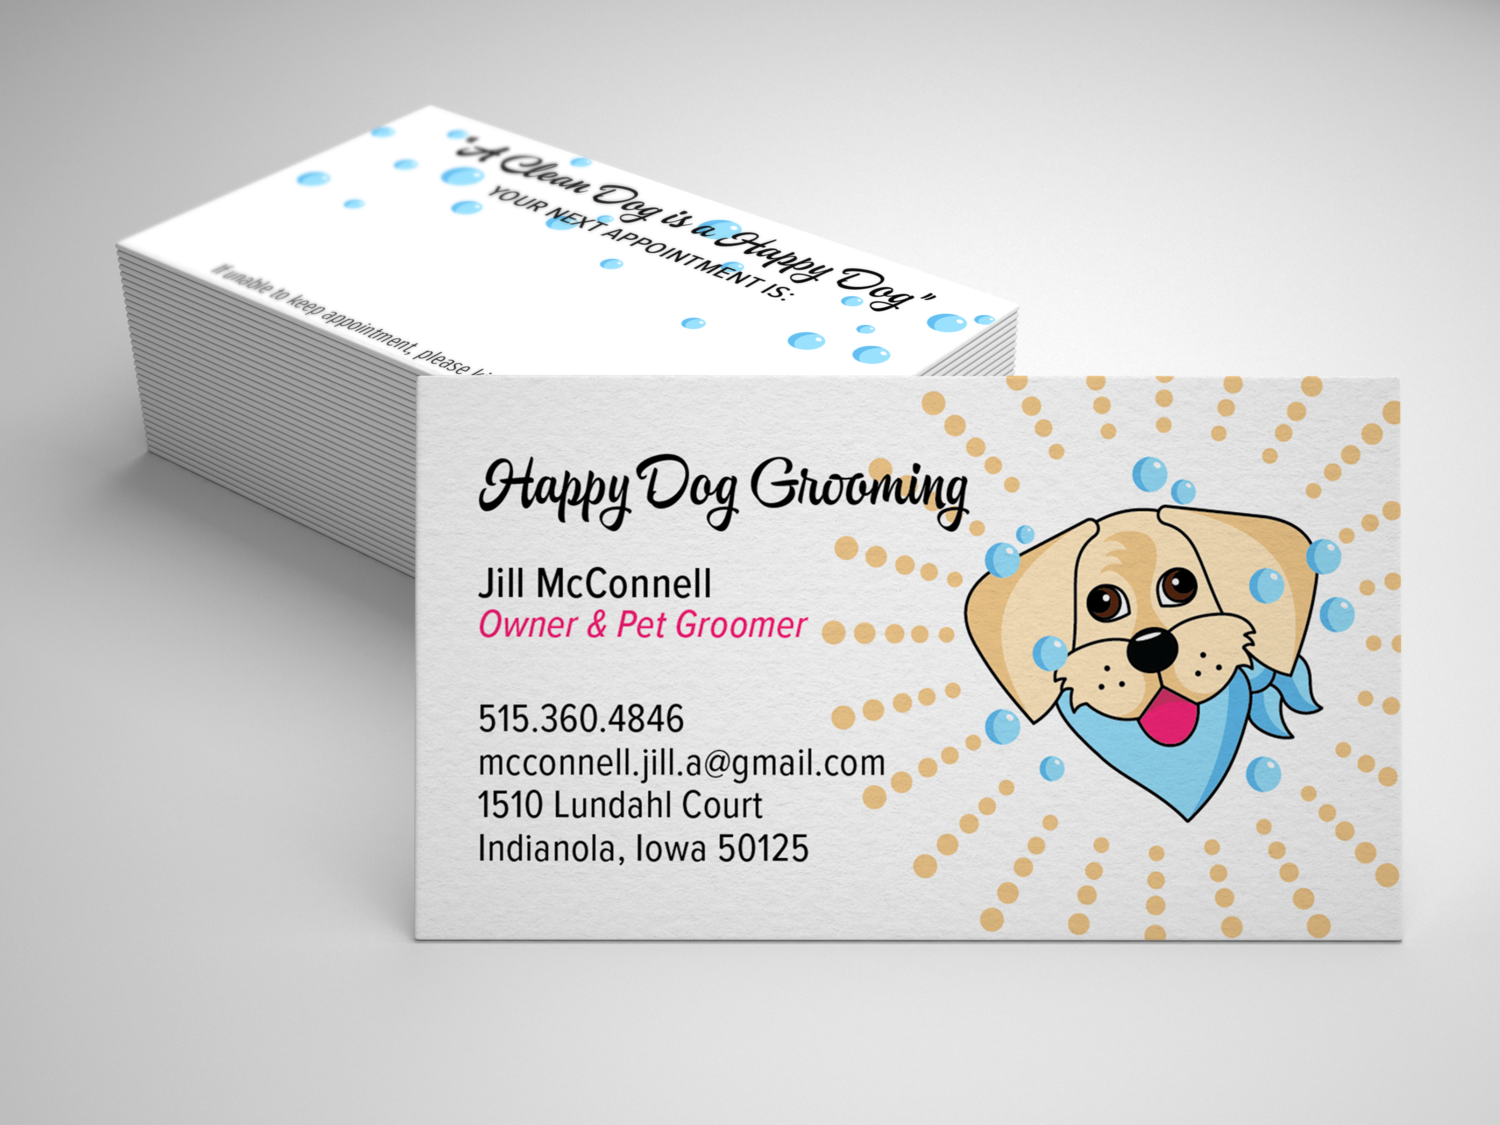 Happy Dog Grooming — Peggy Vespa